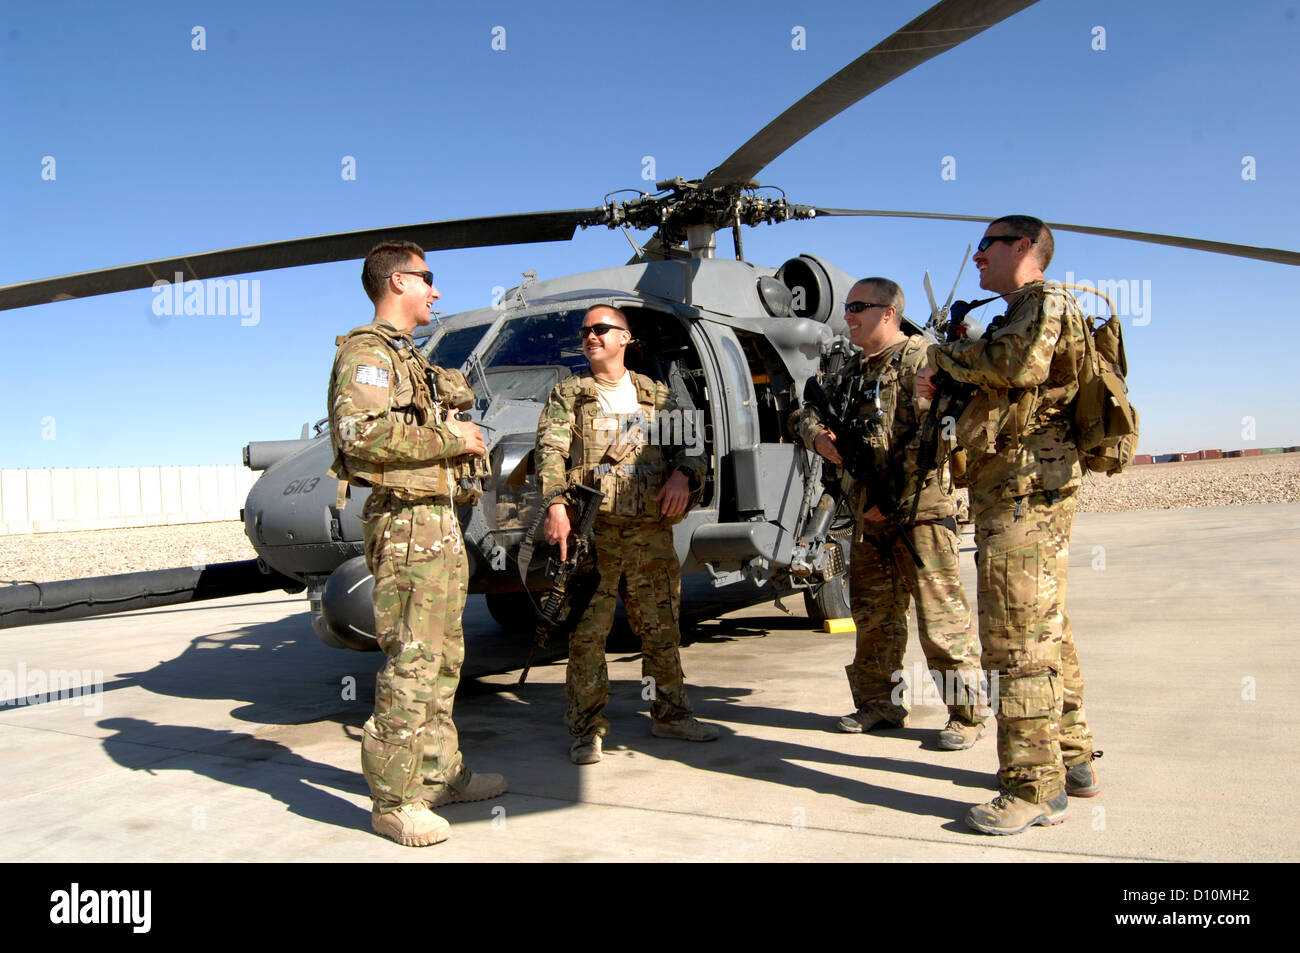 (From left) Capt. Shaun Cullen, Capt. Tripp Zanetis, Tech. Sgt. Jim Denniston and Tech. Sgt. Erick Pound are all - Stock Image